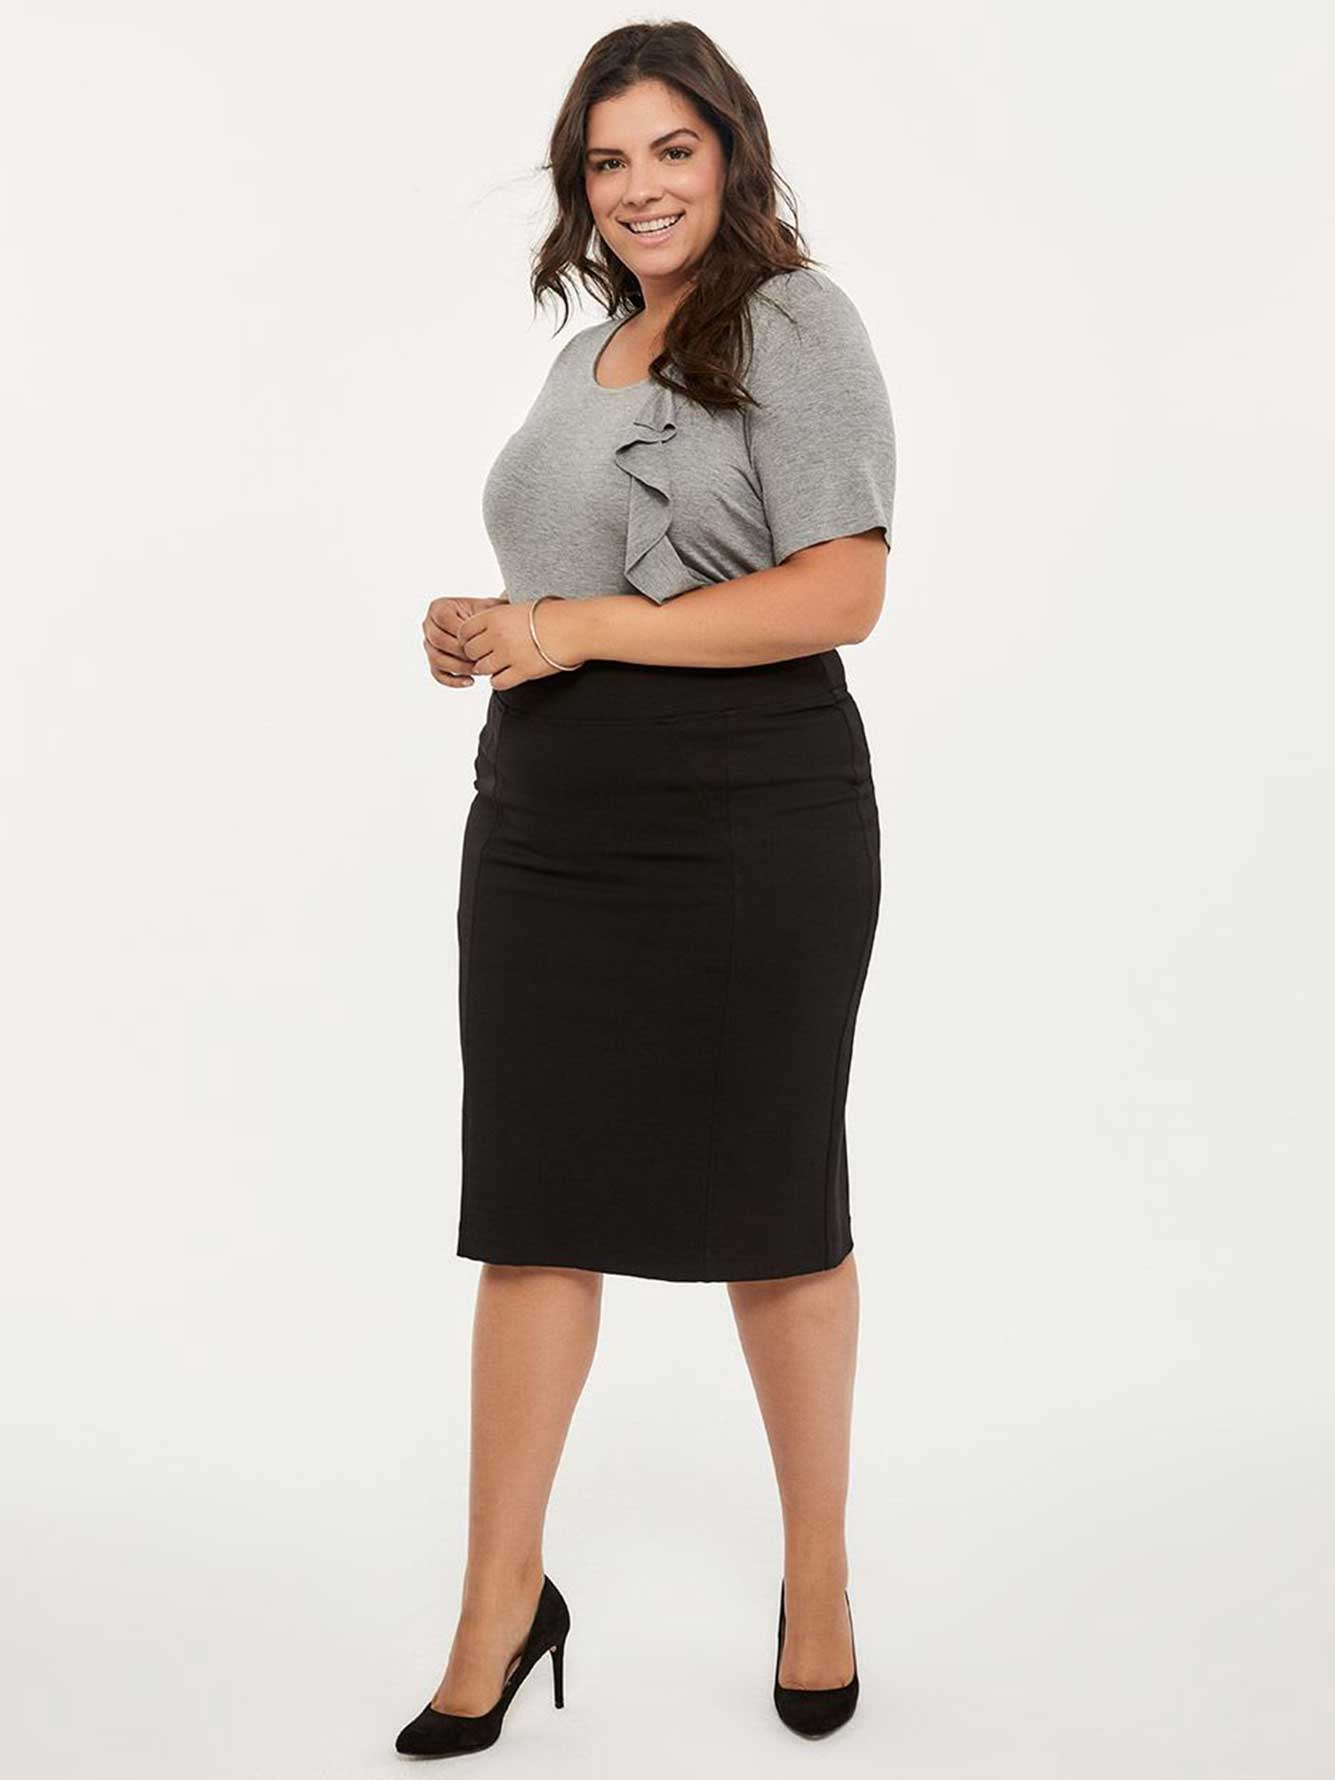 Ponte de Roma Pencil Skirt - In Every Story